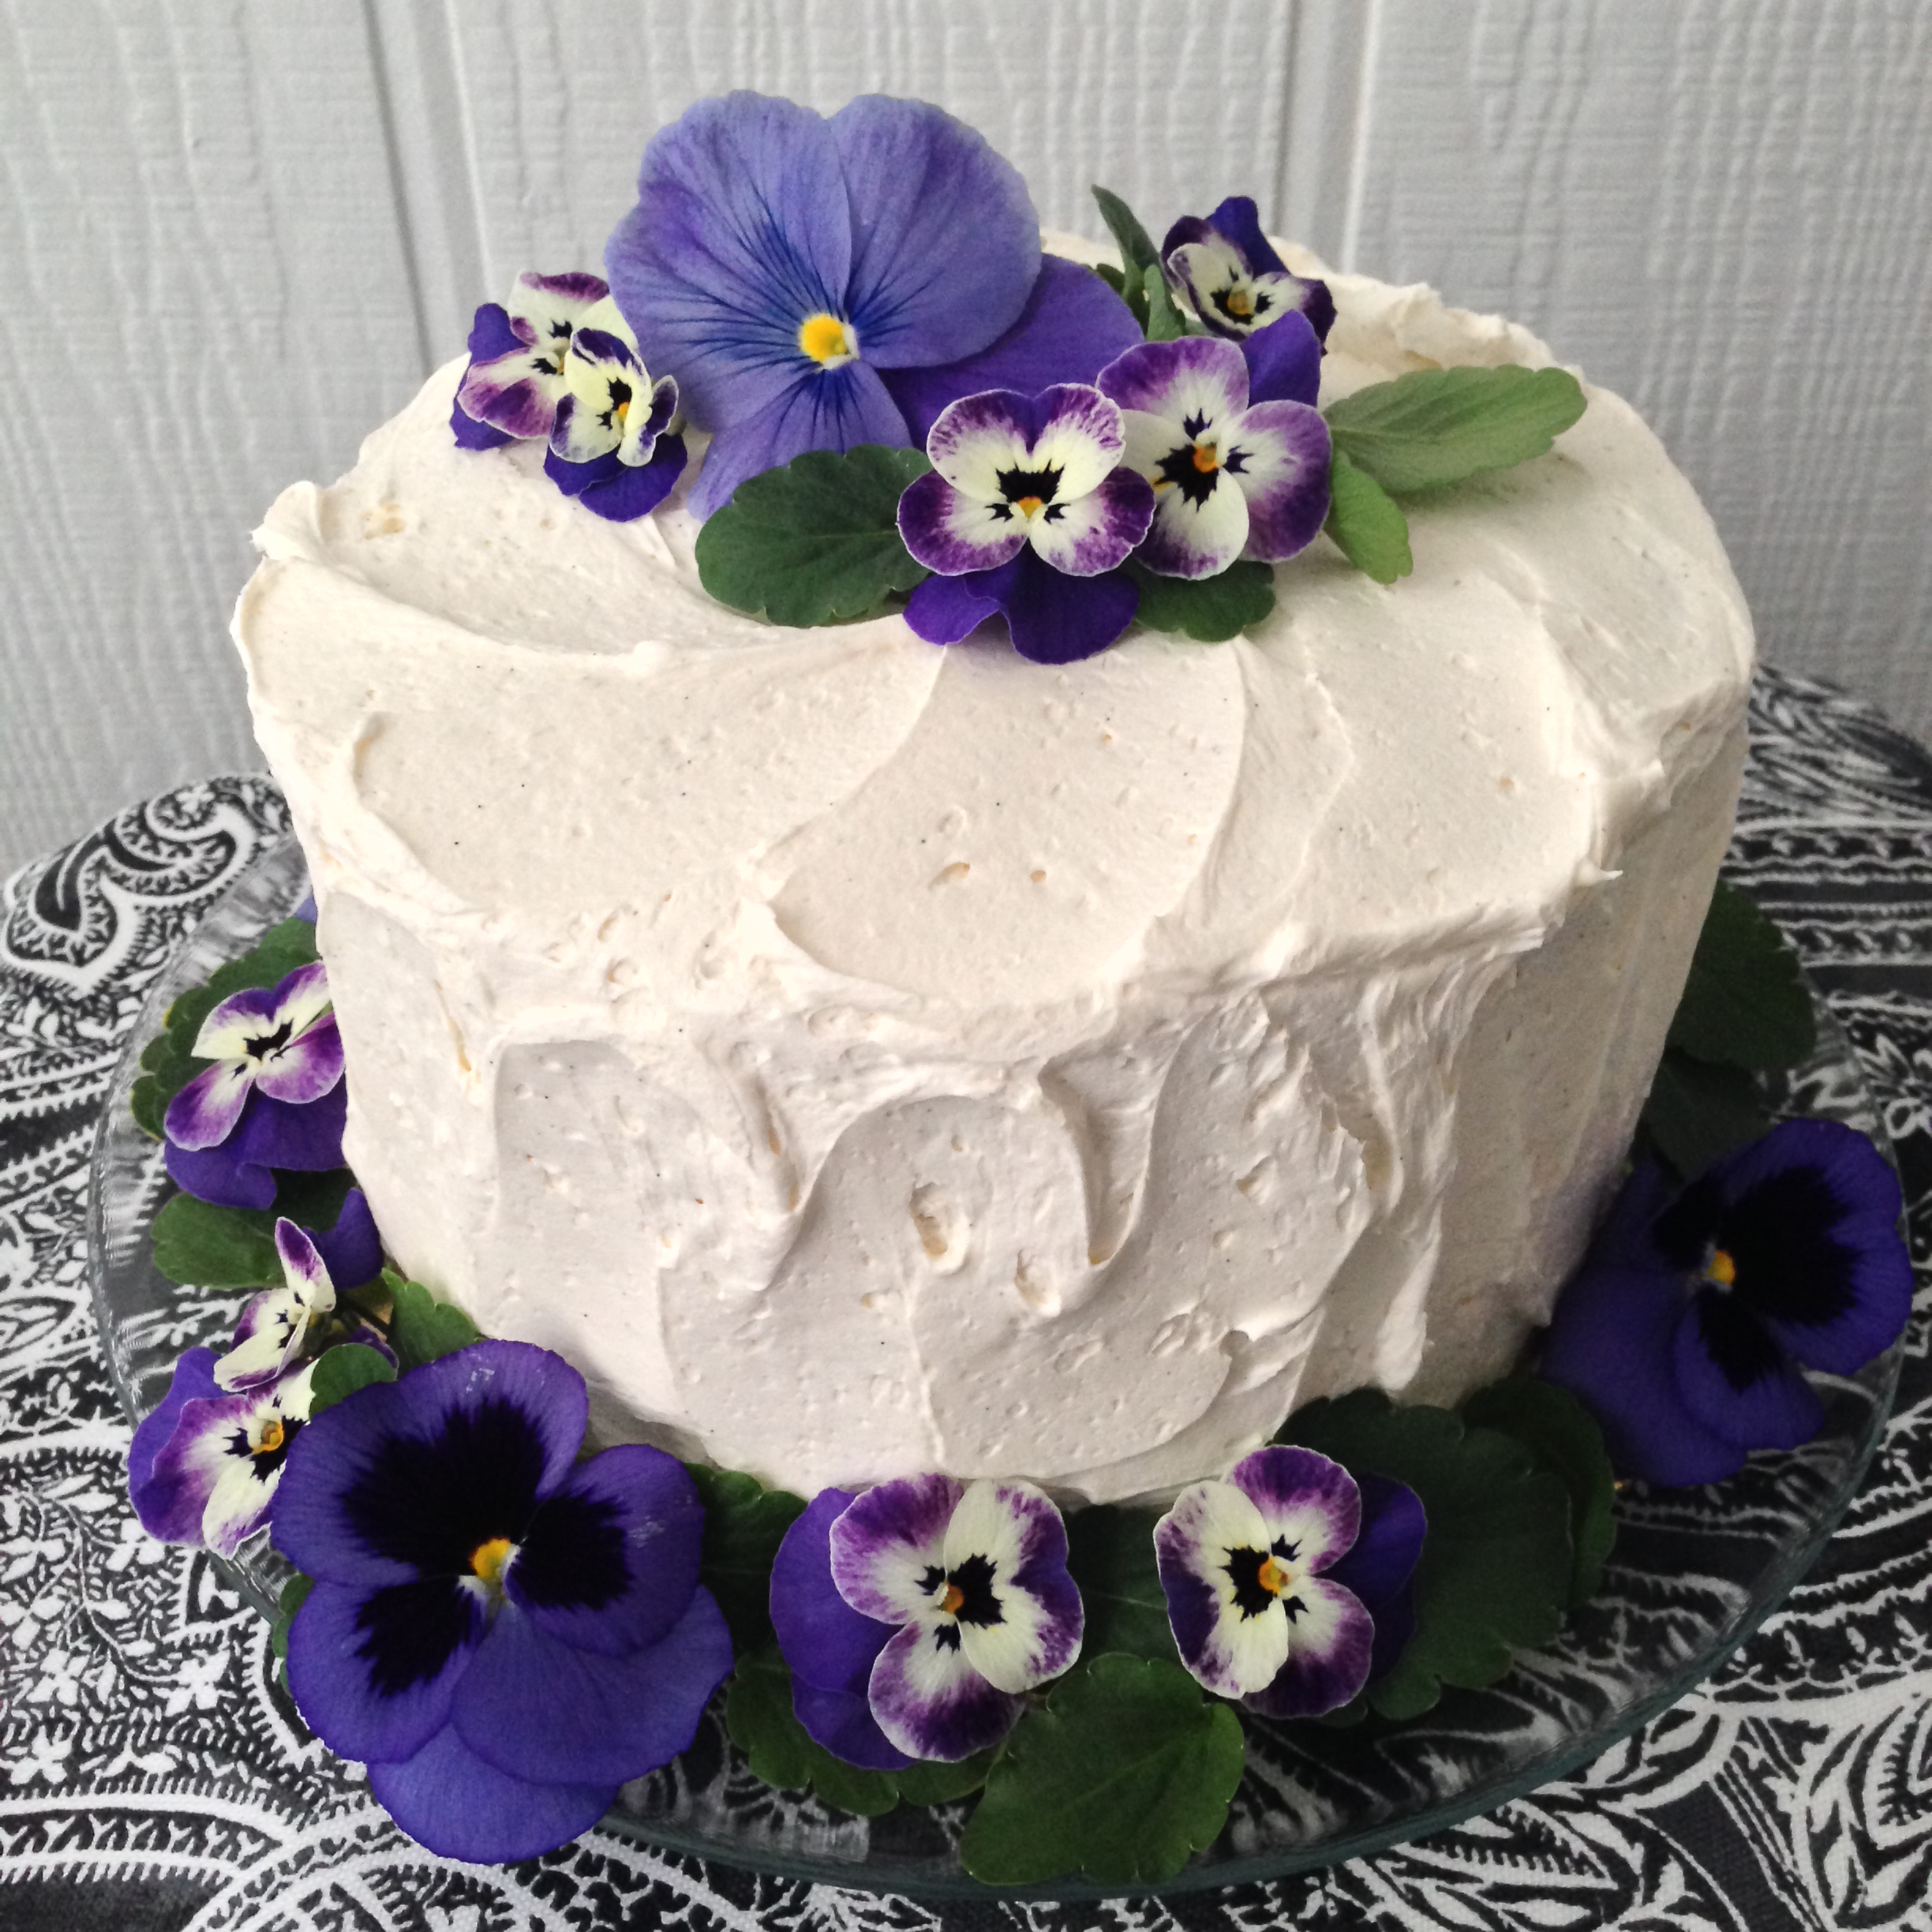 Photograph: Catherine G. Damewood, Purveyors of Fine Florals & Design   Vanilla Cake:  Decorated with pansies